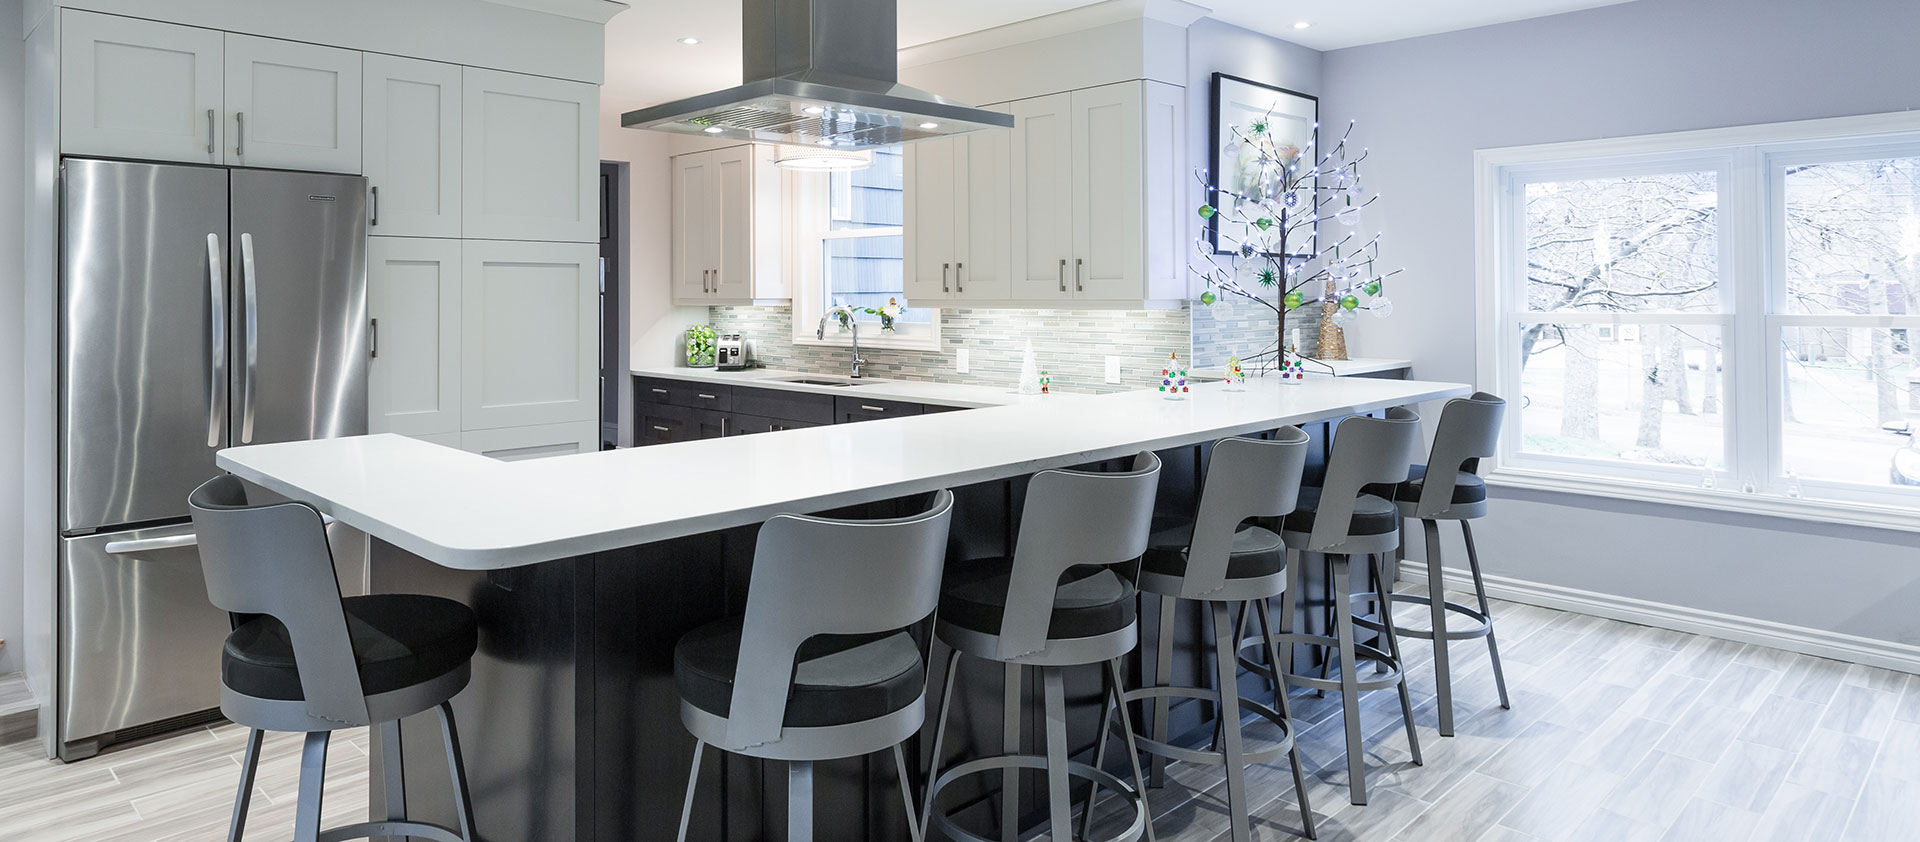 Kitchen Design Plus Of Halifax Awarded Best Of Houzz 2017 Photo Gallery